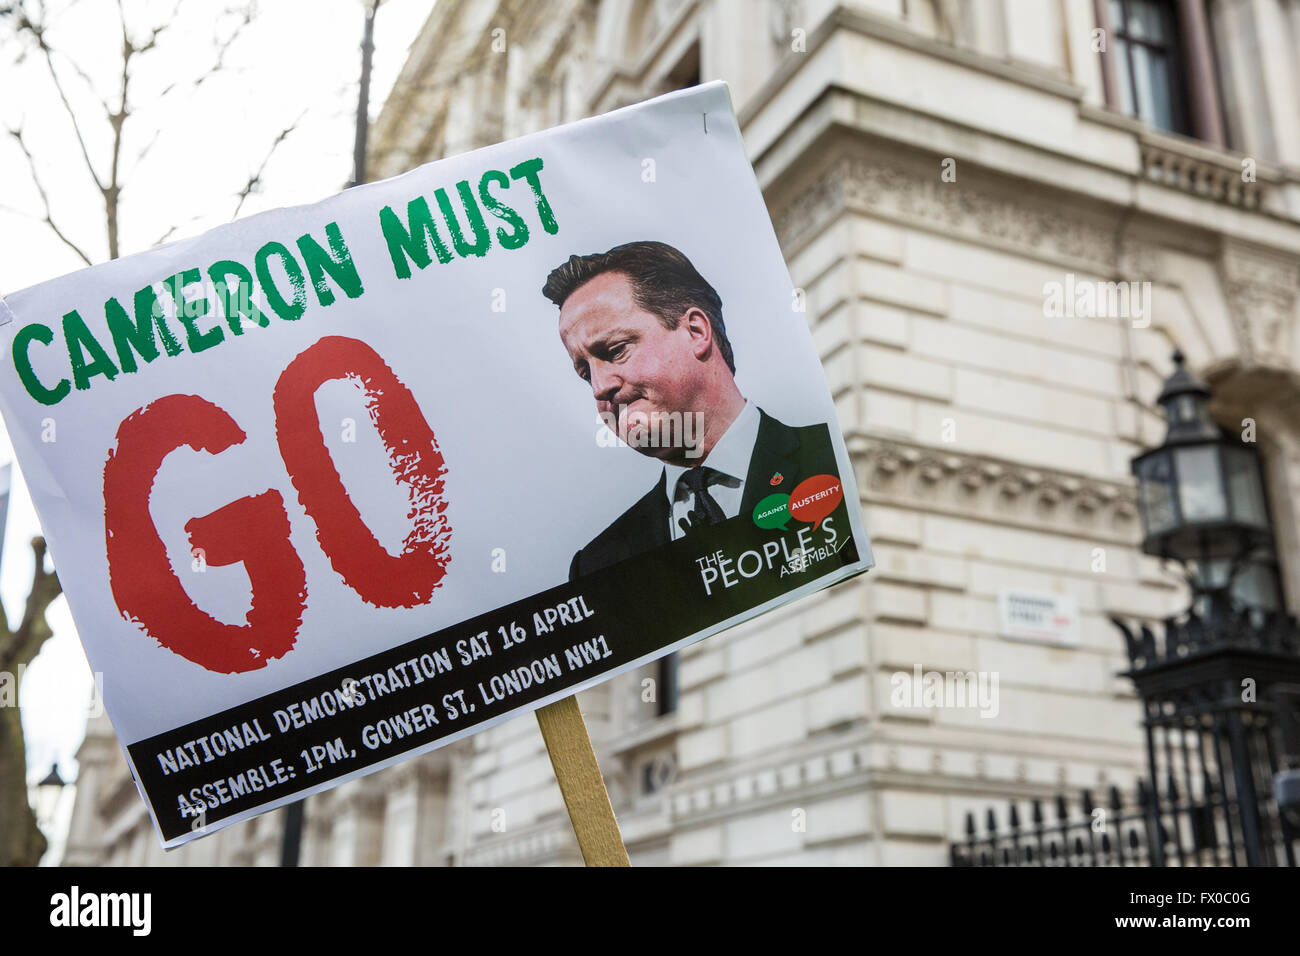 London, UK. 9th April, 2016. A 'Cameron Must Go' placard outside Downing Street during a protest calling - Stock Image